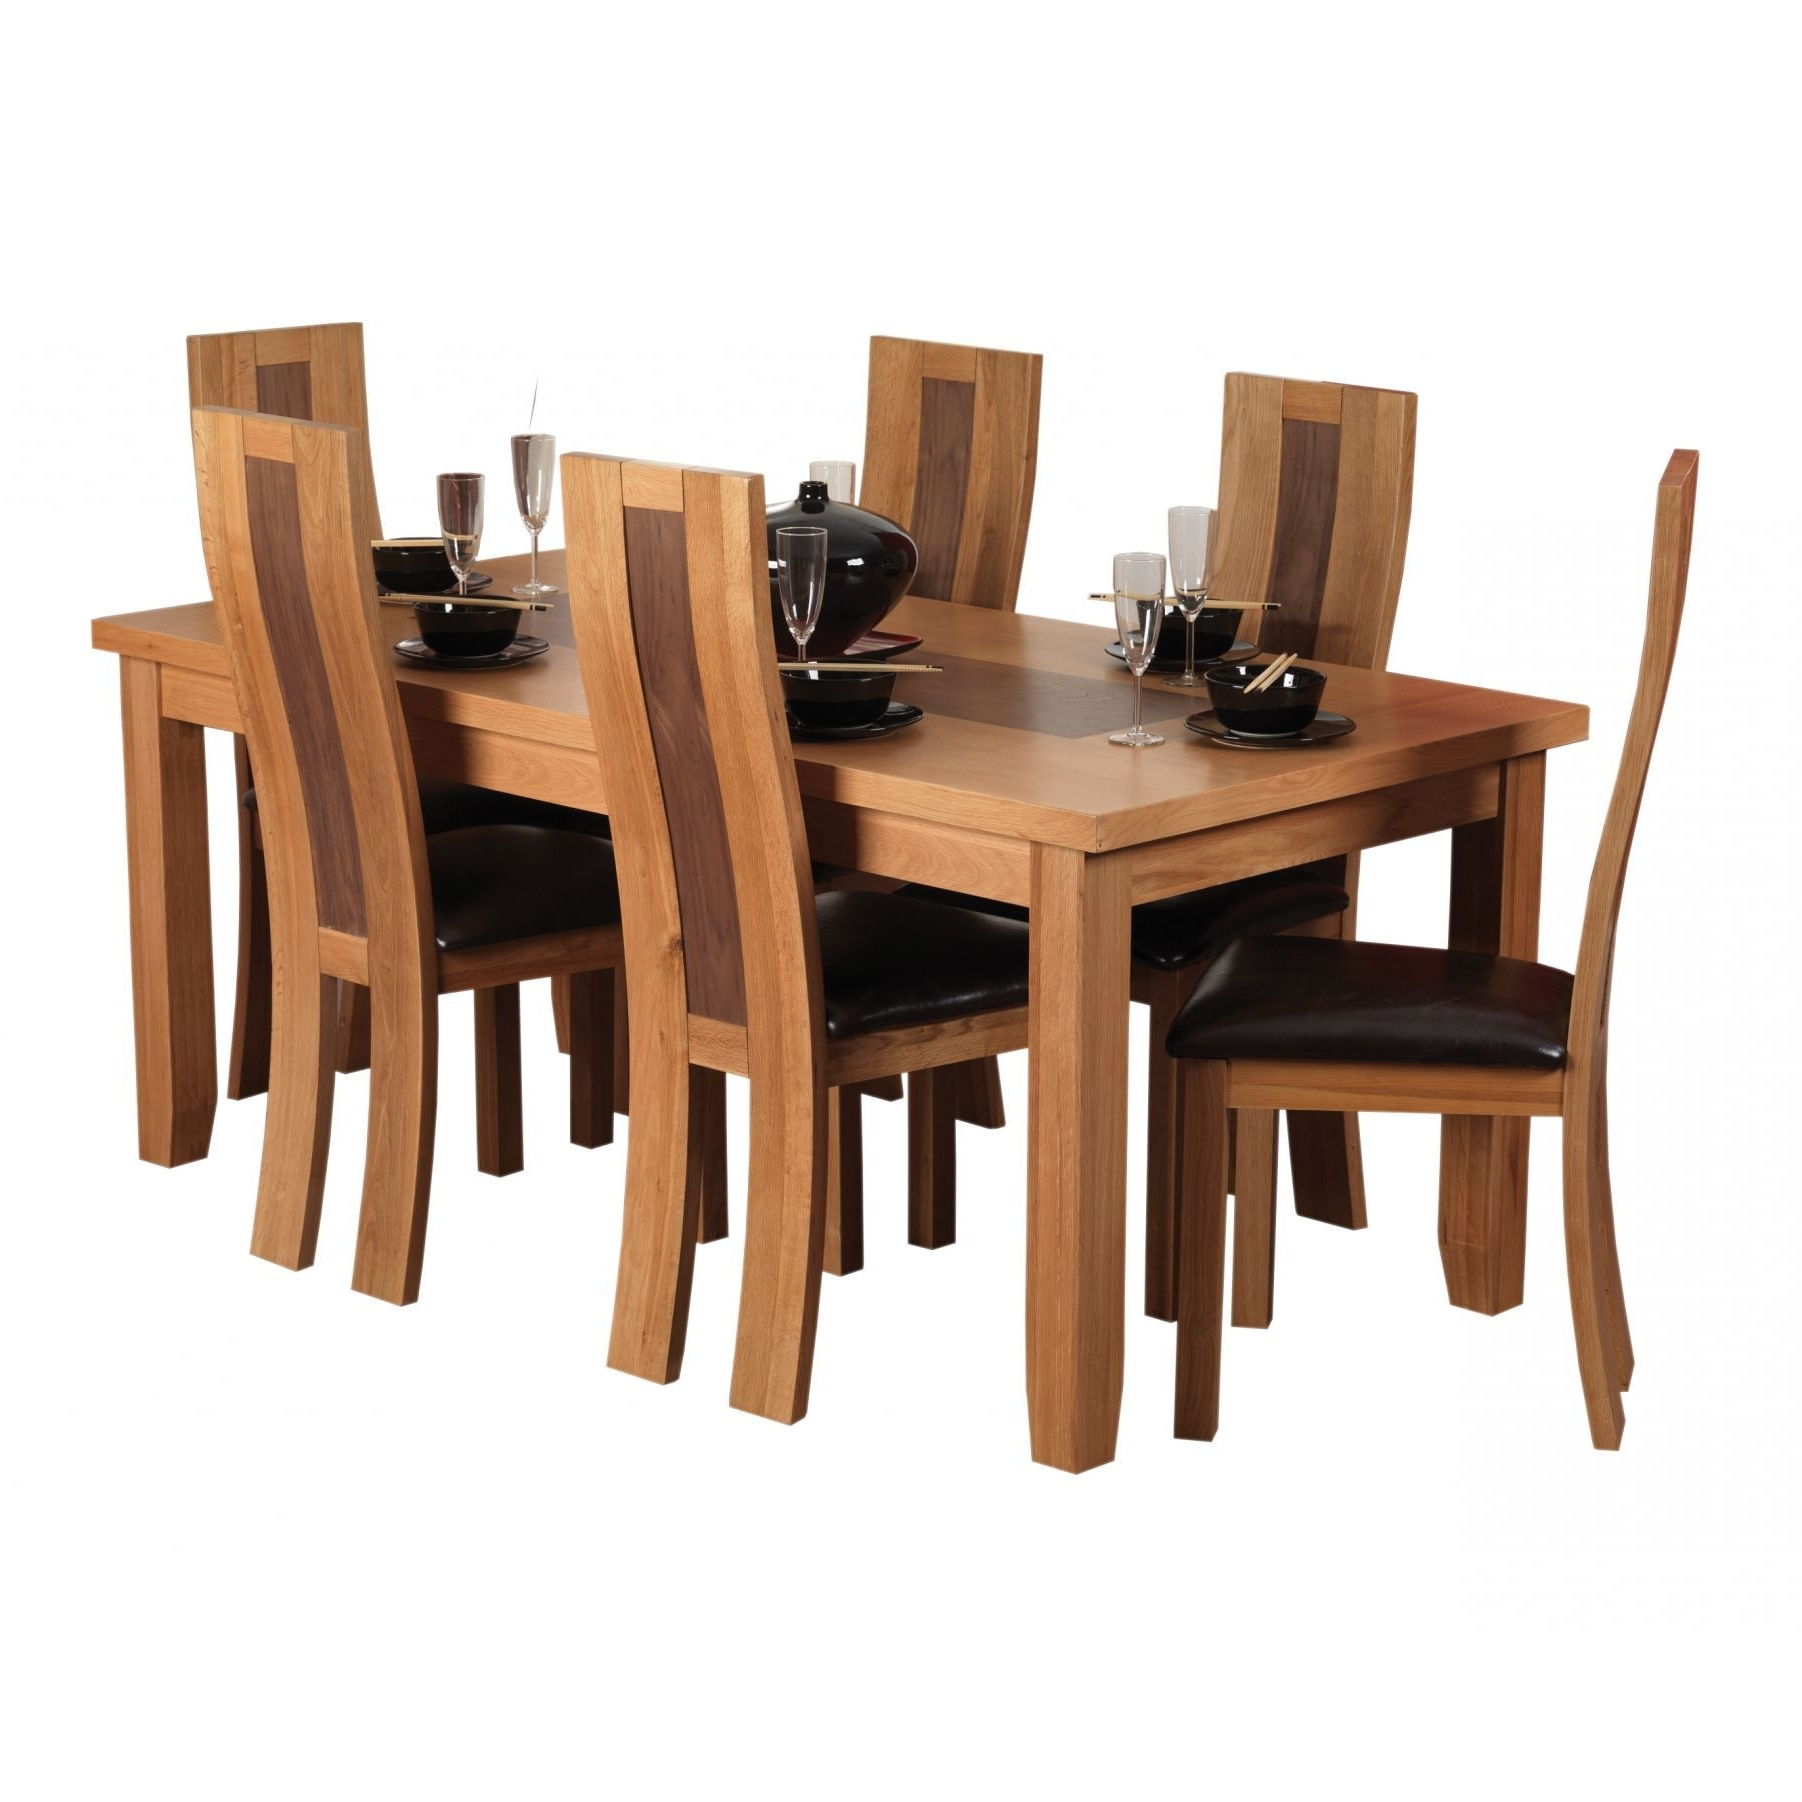 Astounding Furniture Dining Table Toscana Dining Furniture Regarding Current Toscana Dining Tables (View 18 of 25)